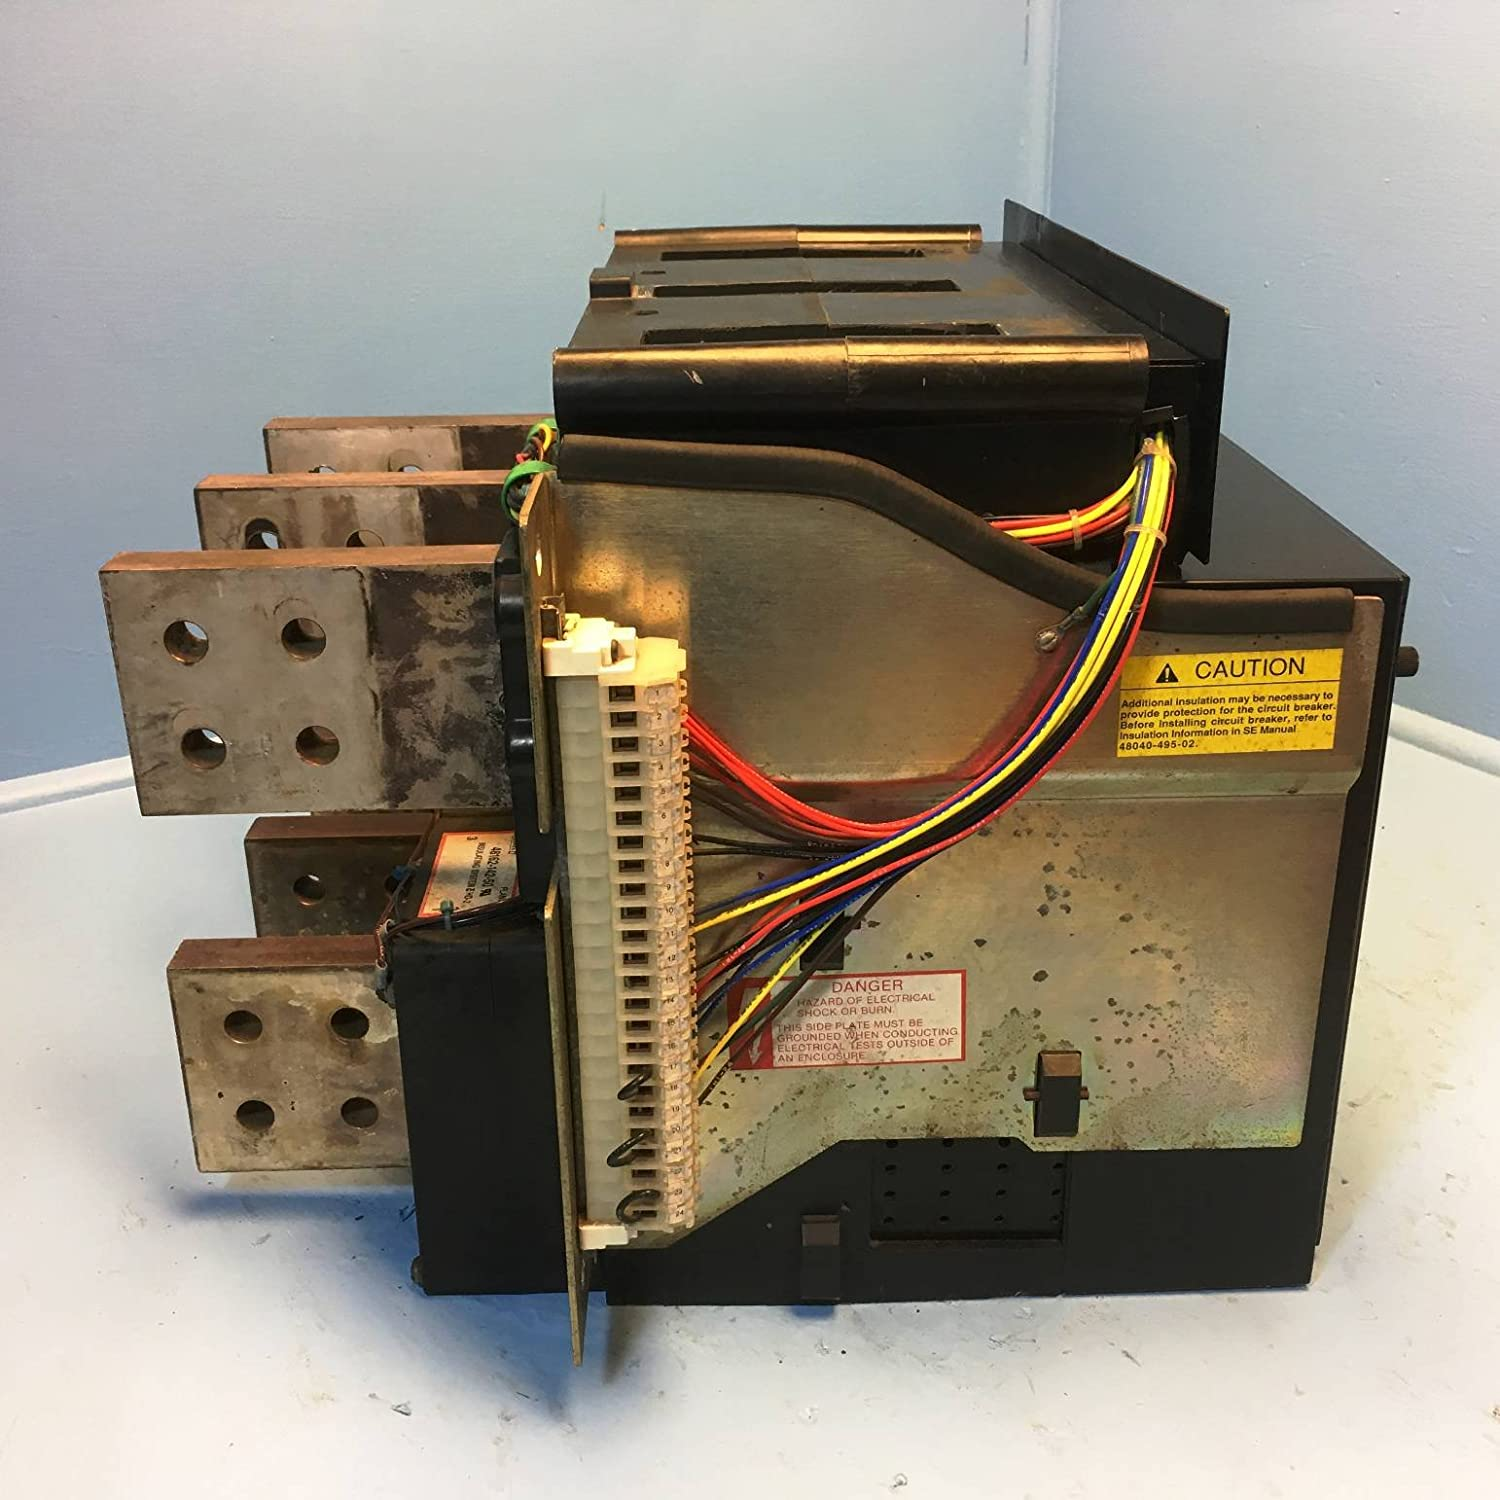 Square D Sefg30 3000a Sef Circuit Breaker 600v 3p S930lsig 3000 Amp Basics Of Breakers For Electrical Engineers Additional Info Lsig Ground Industrial Scientific